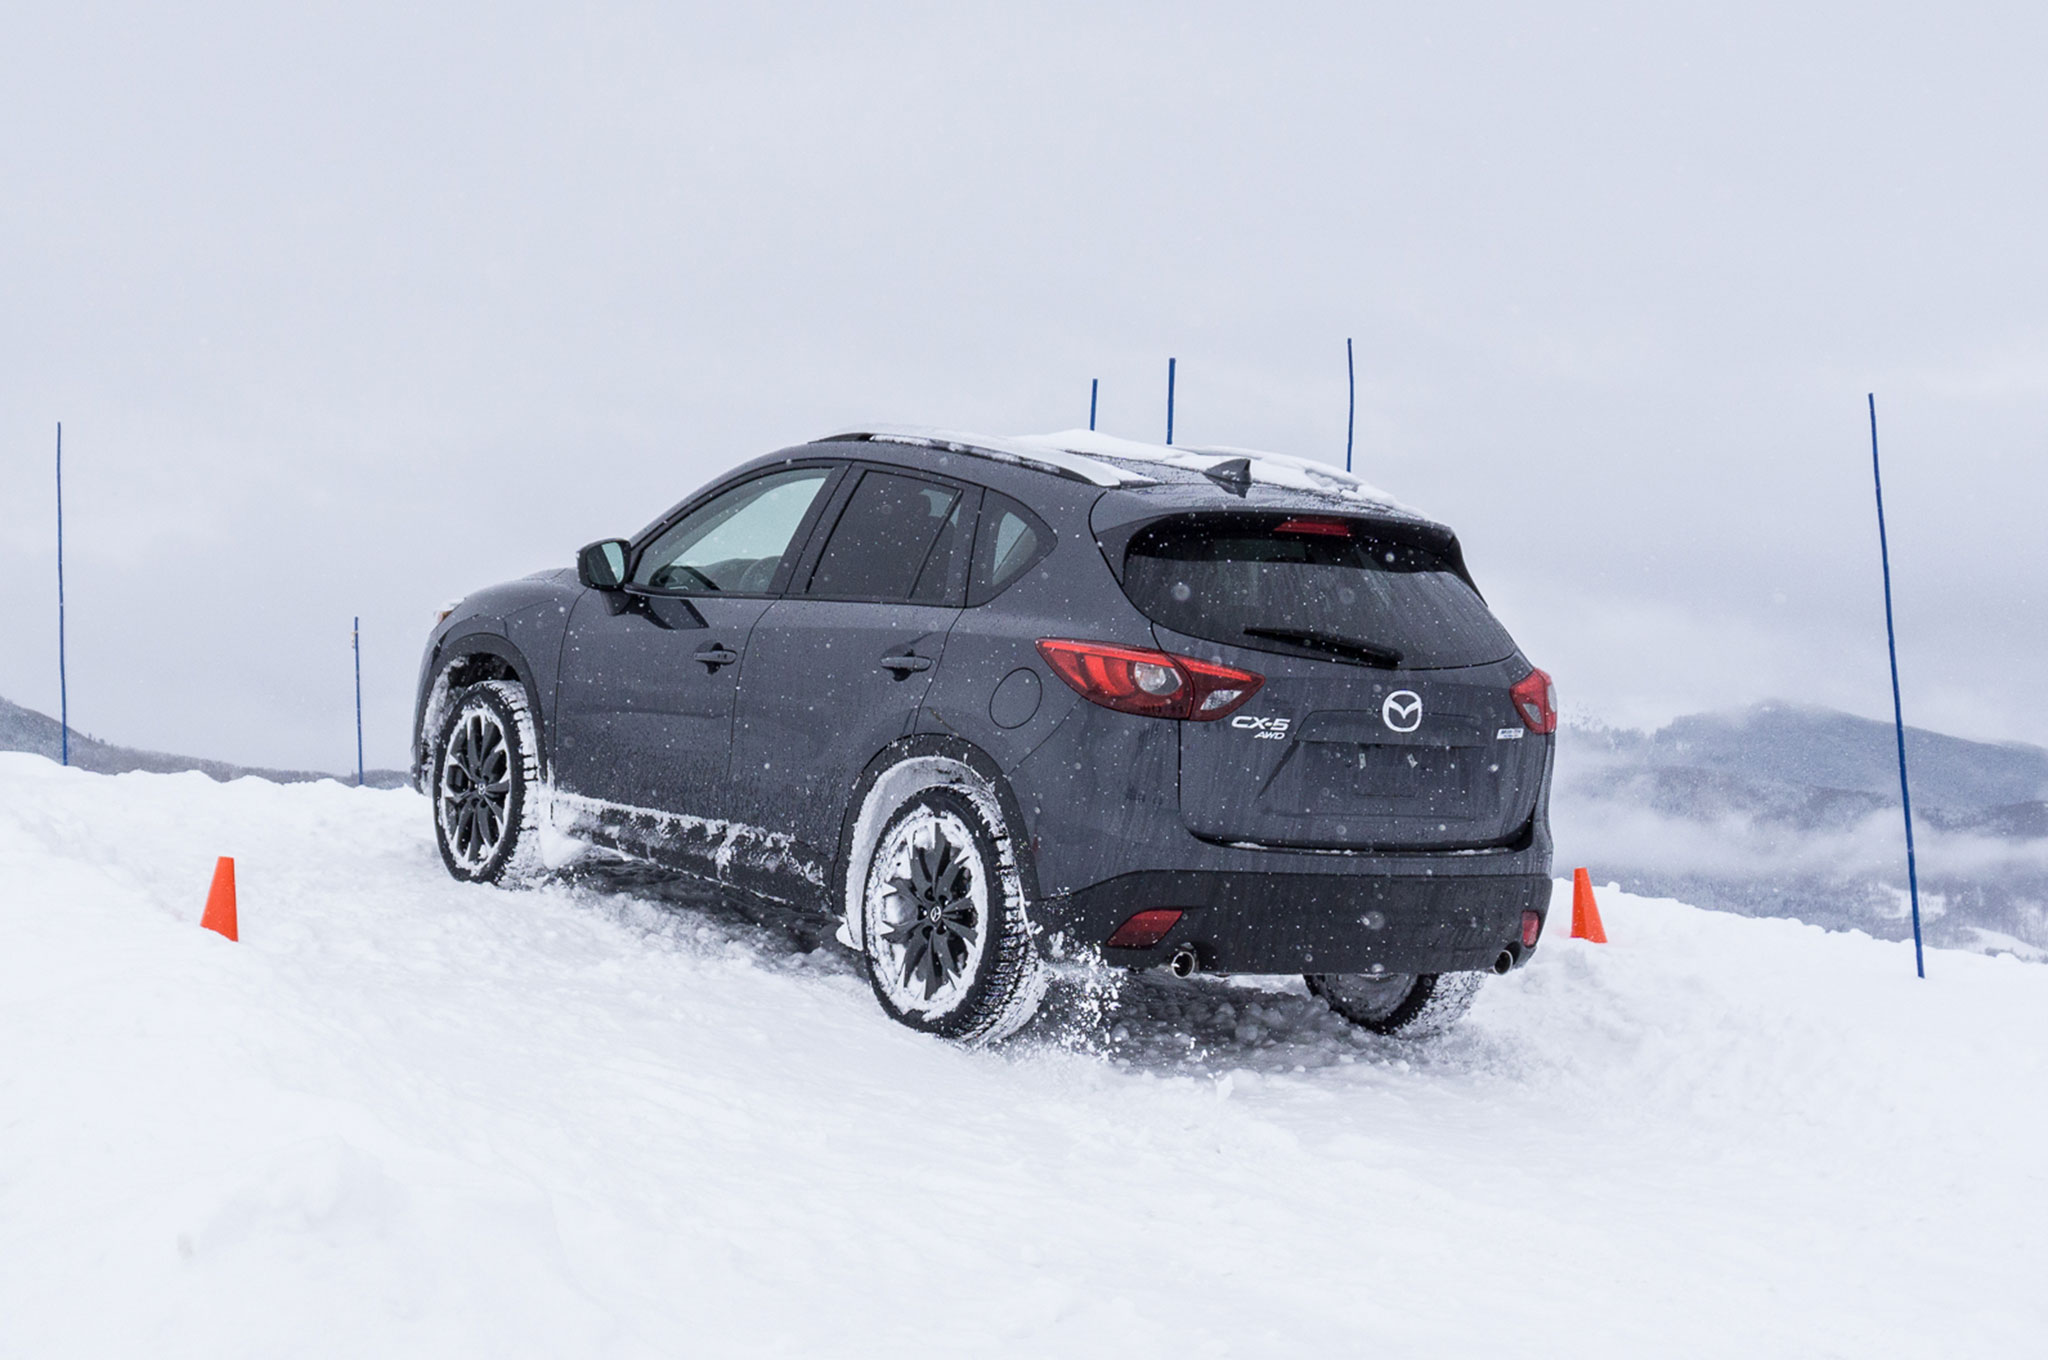 Driving The Mazda Cx 3 Cx 5 And Mx 5 Miata On Snow And Ice